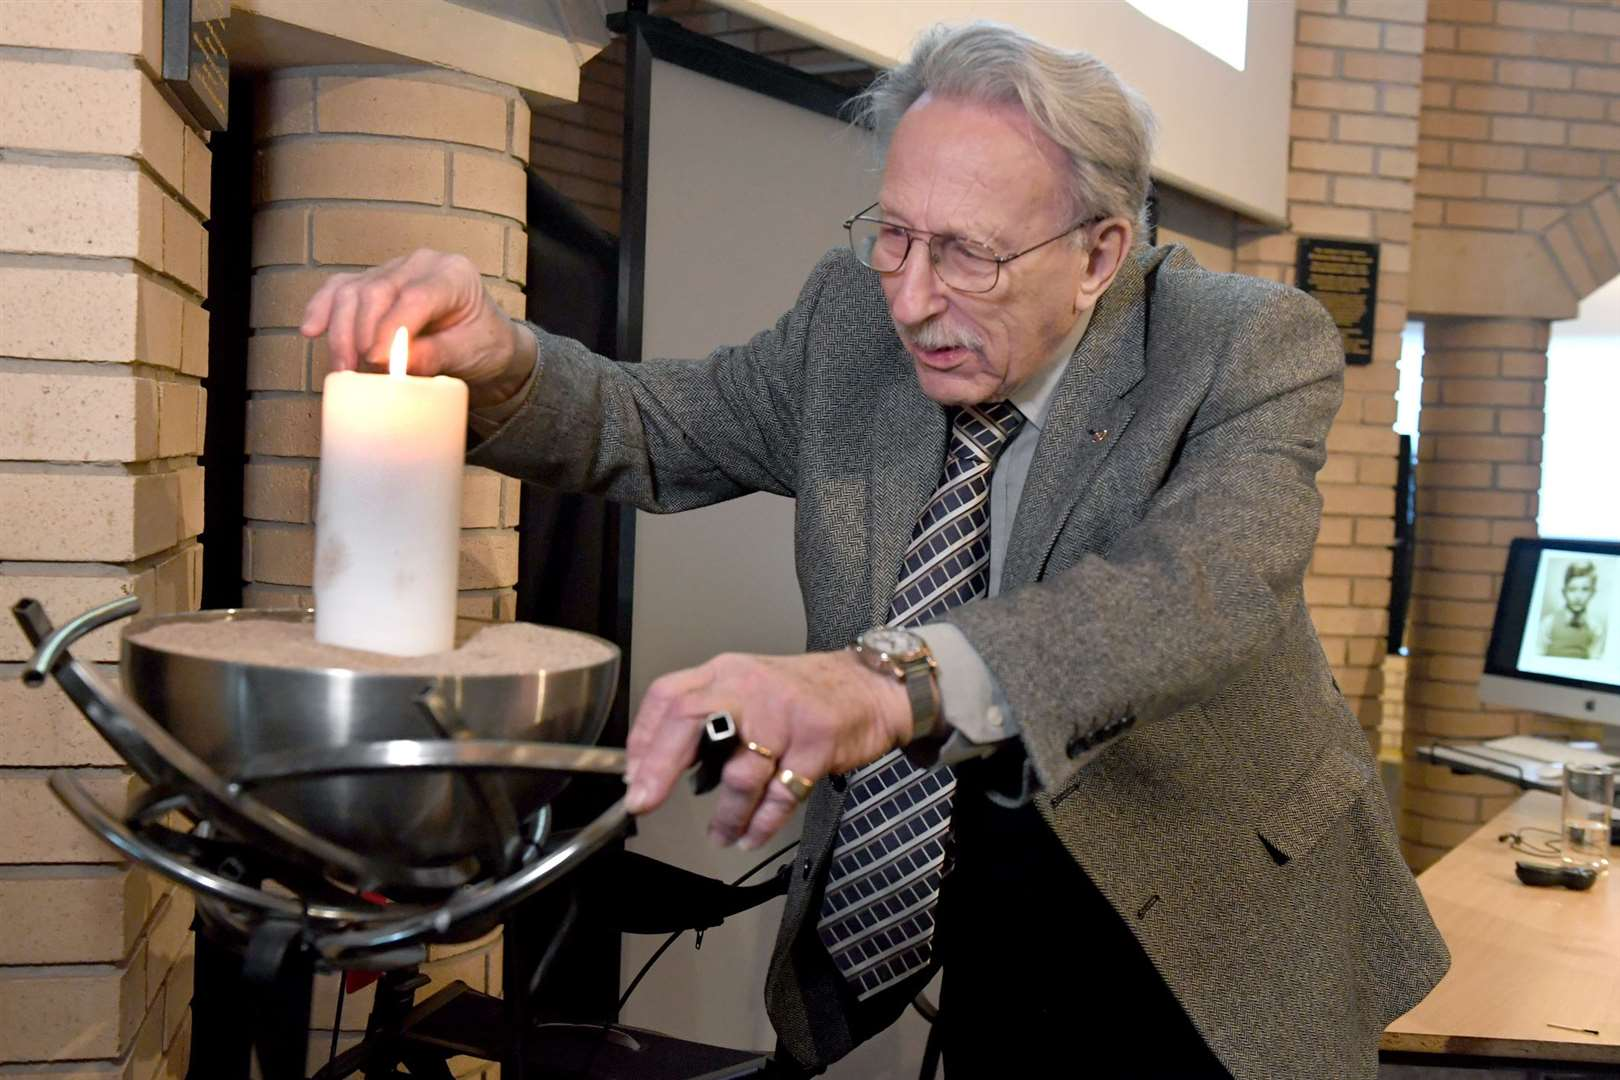 Holocaust survivor Bob Norton lighting a candle at The National Holocaust Centre and Museum. 280120DD4-8